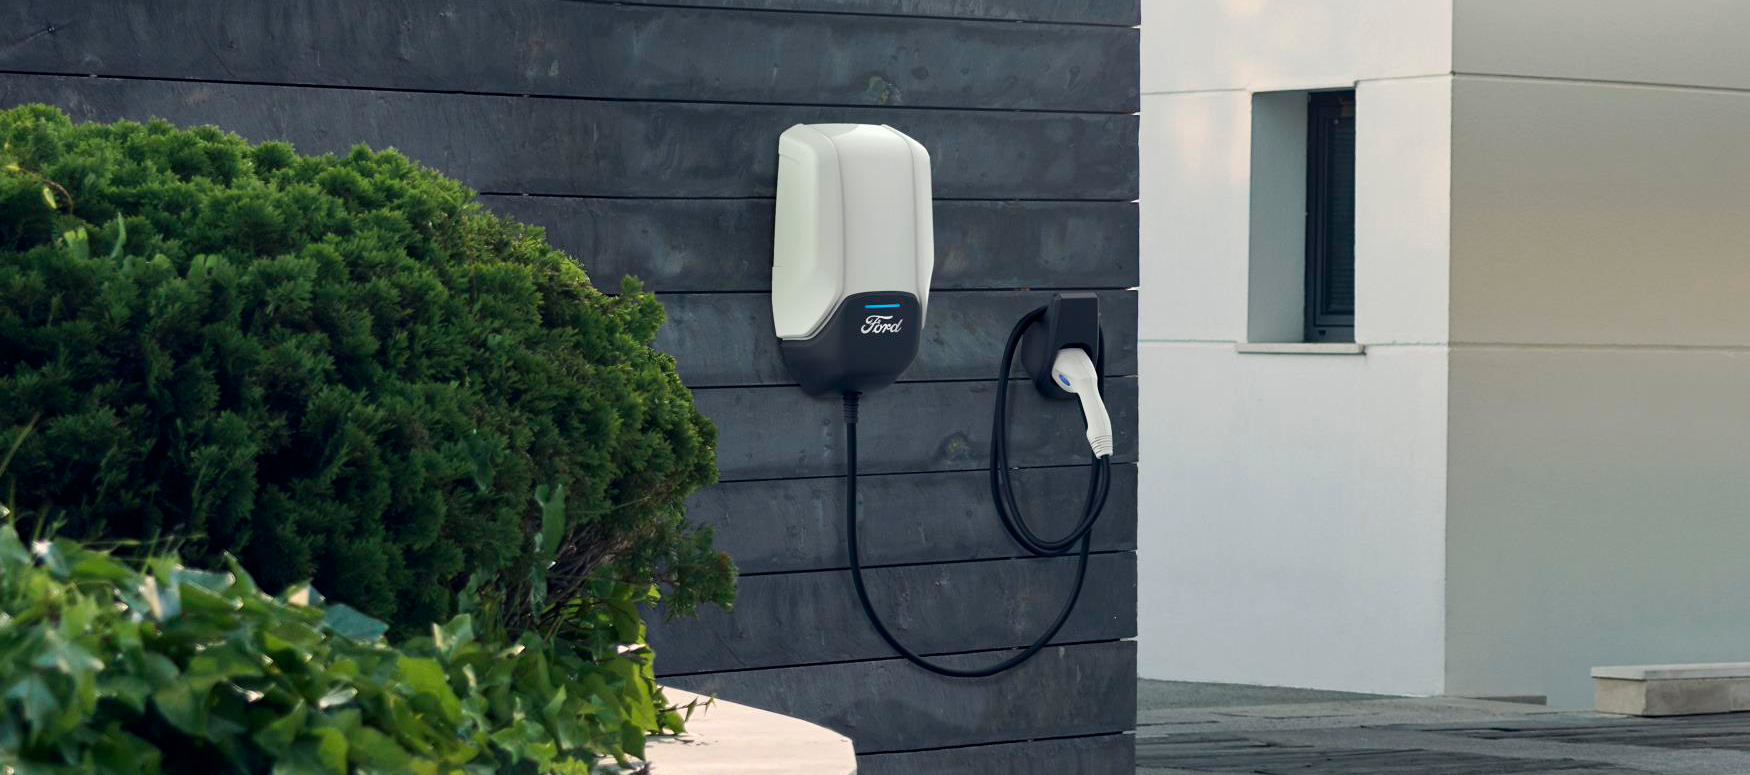 Ford Connect Wallbox